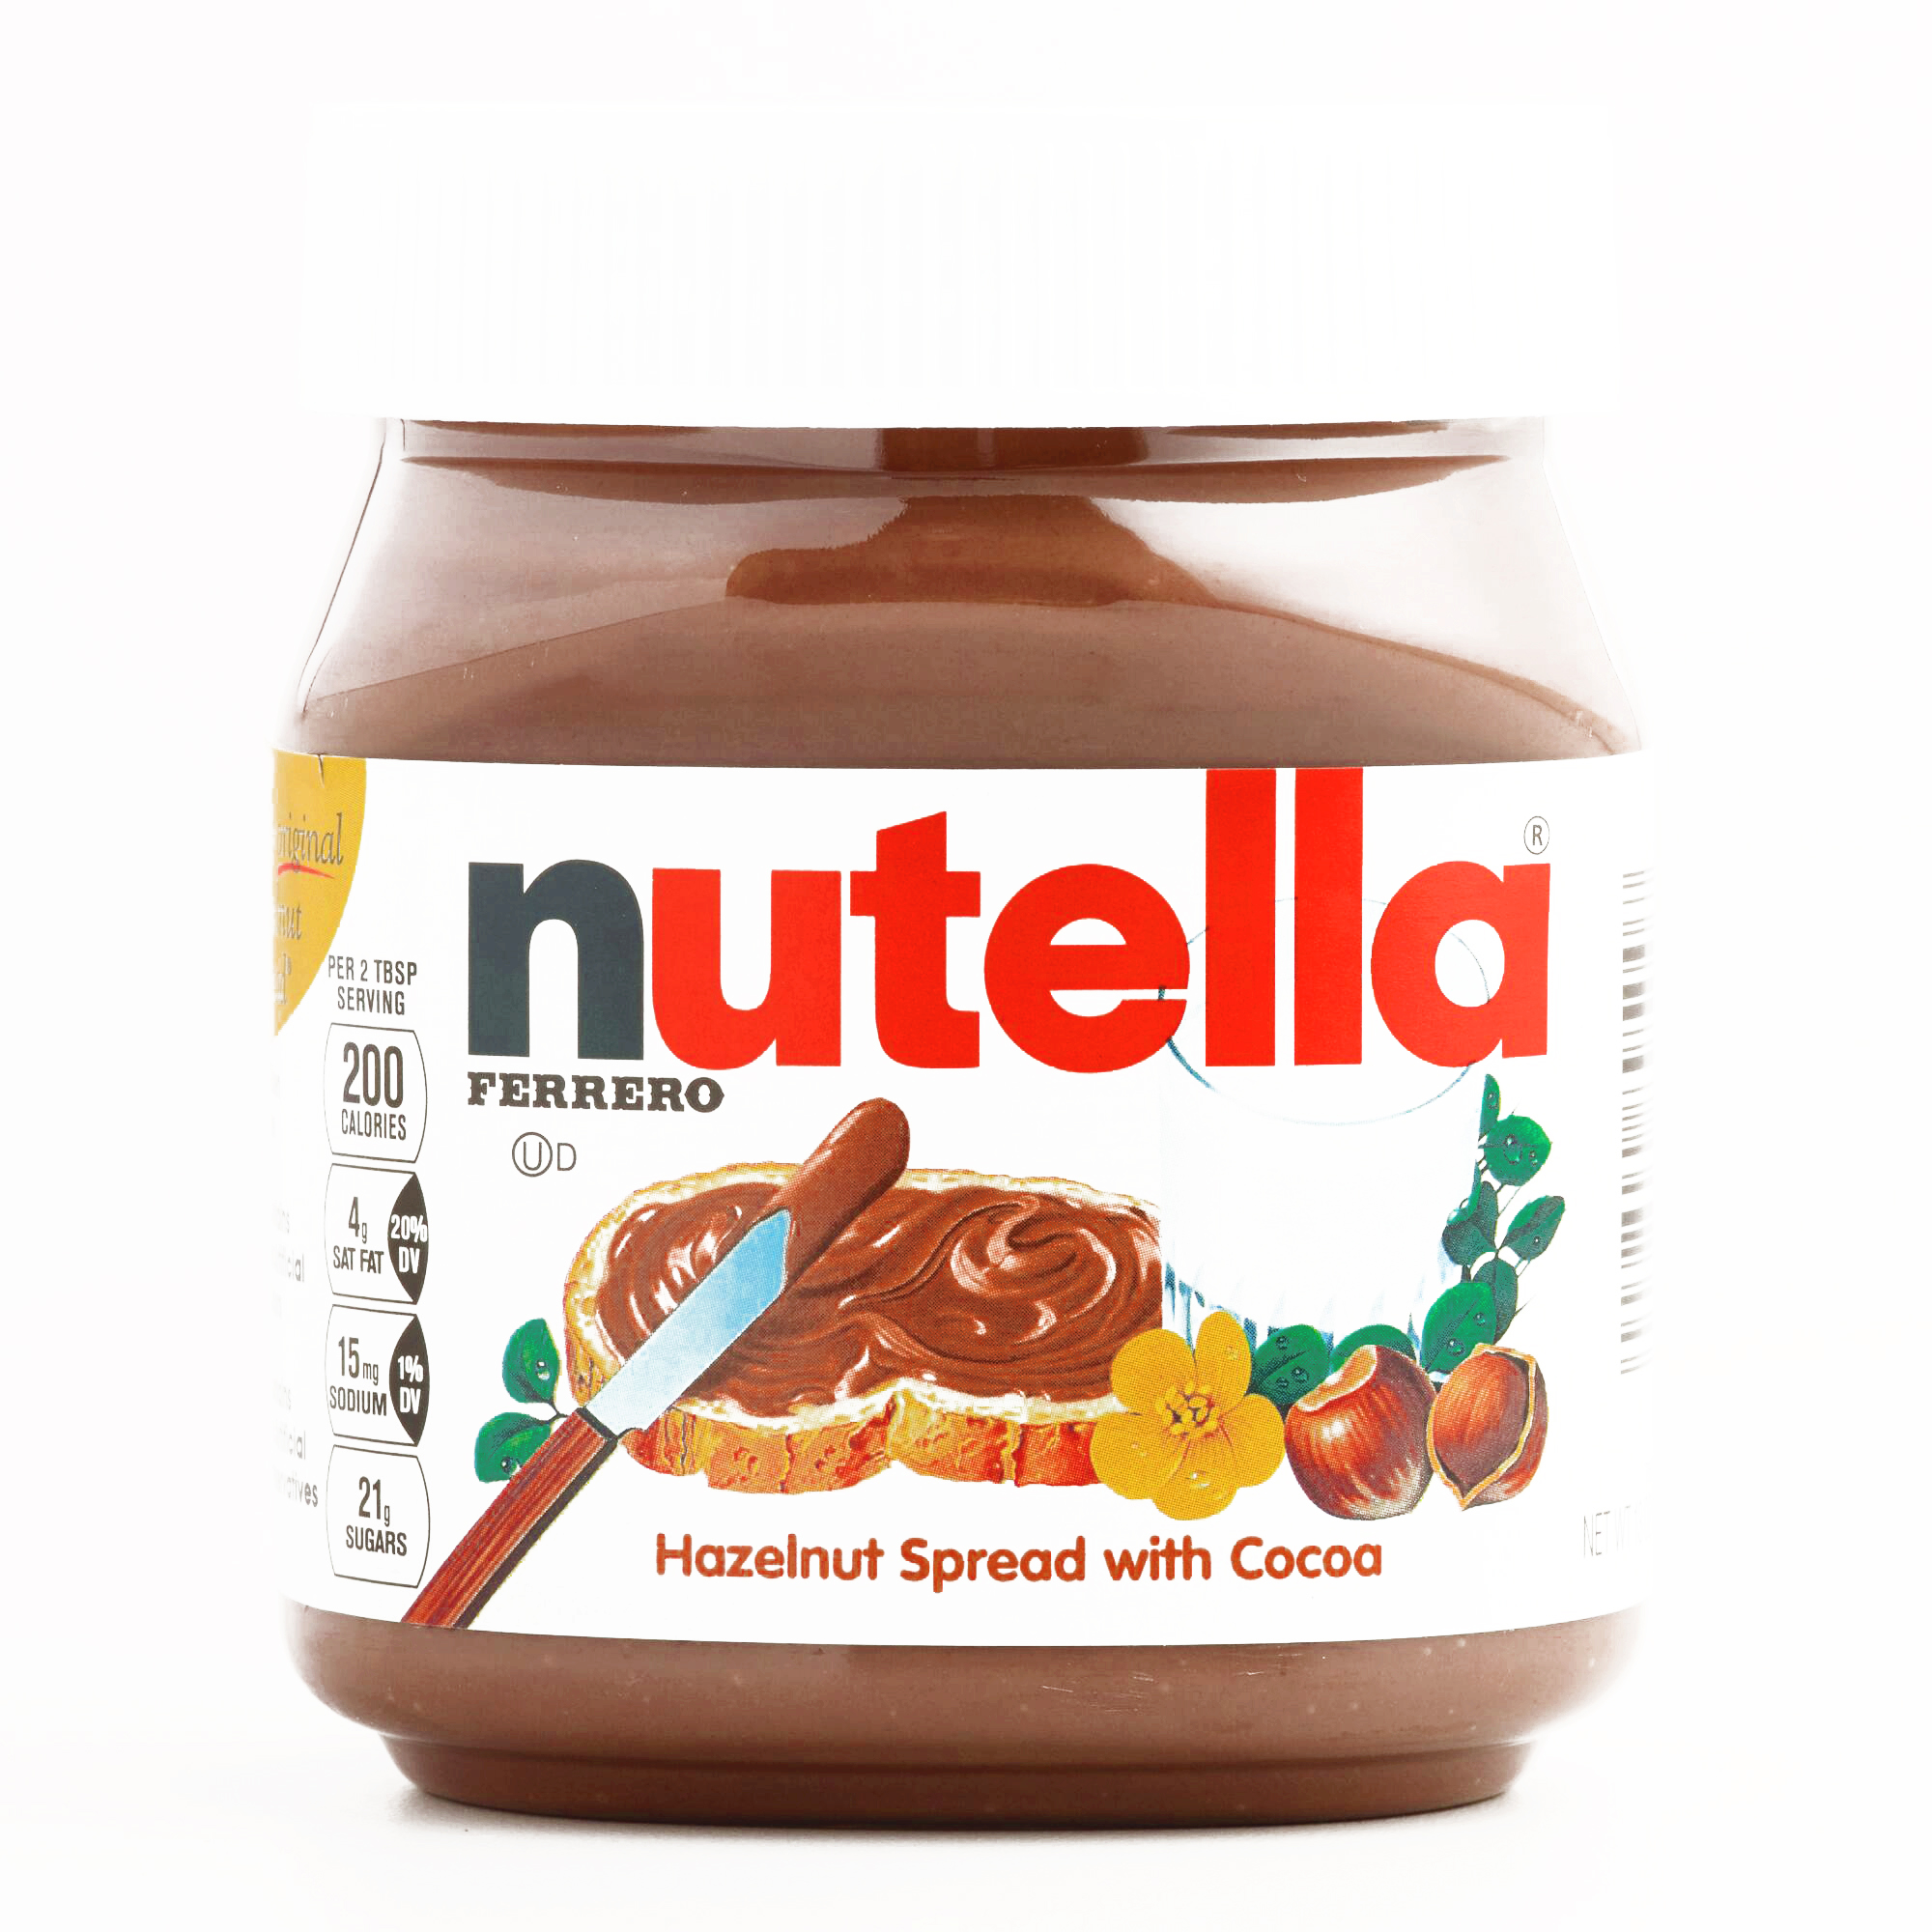 Nutella Hazelnut Spread 13 oz each (1 Item Per Order, not per case)